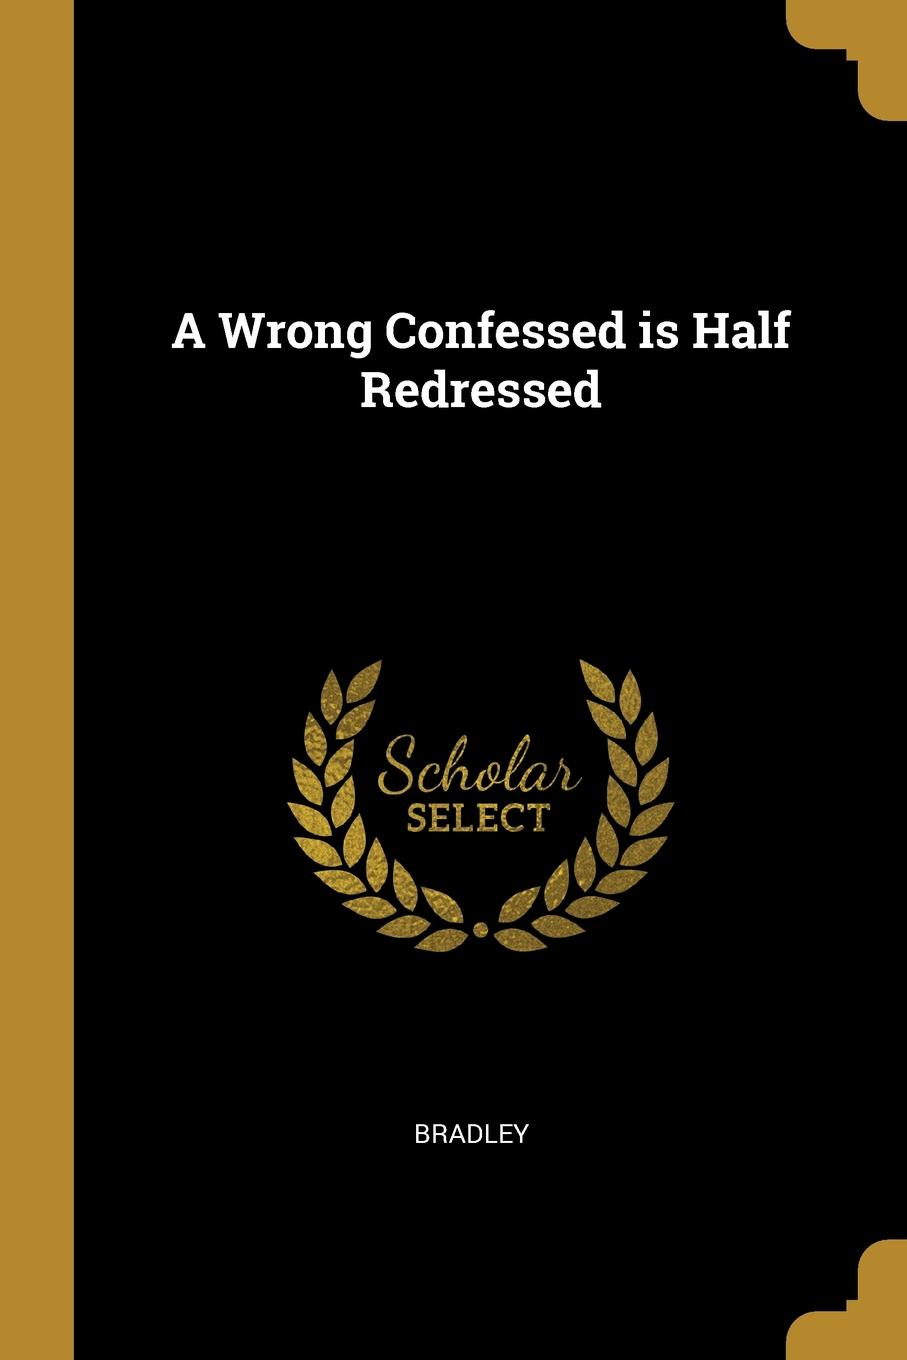 Bradley A Wrong Confessed is Half Redressed